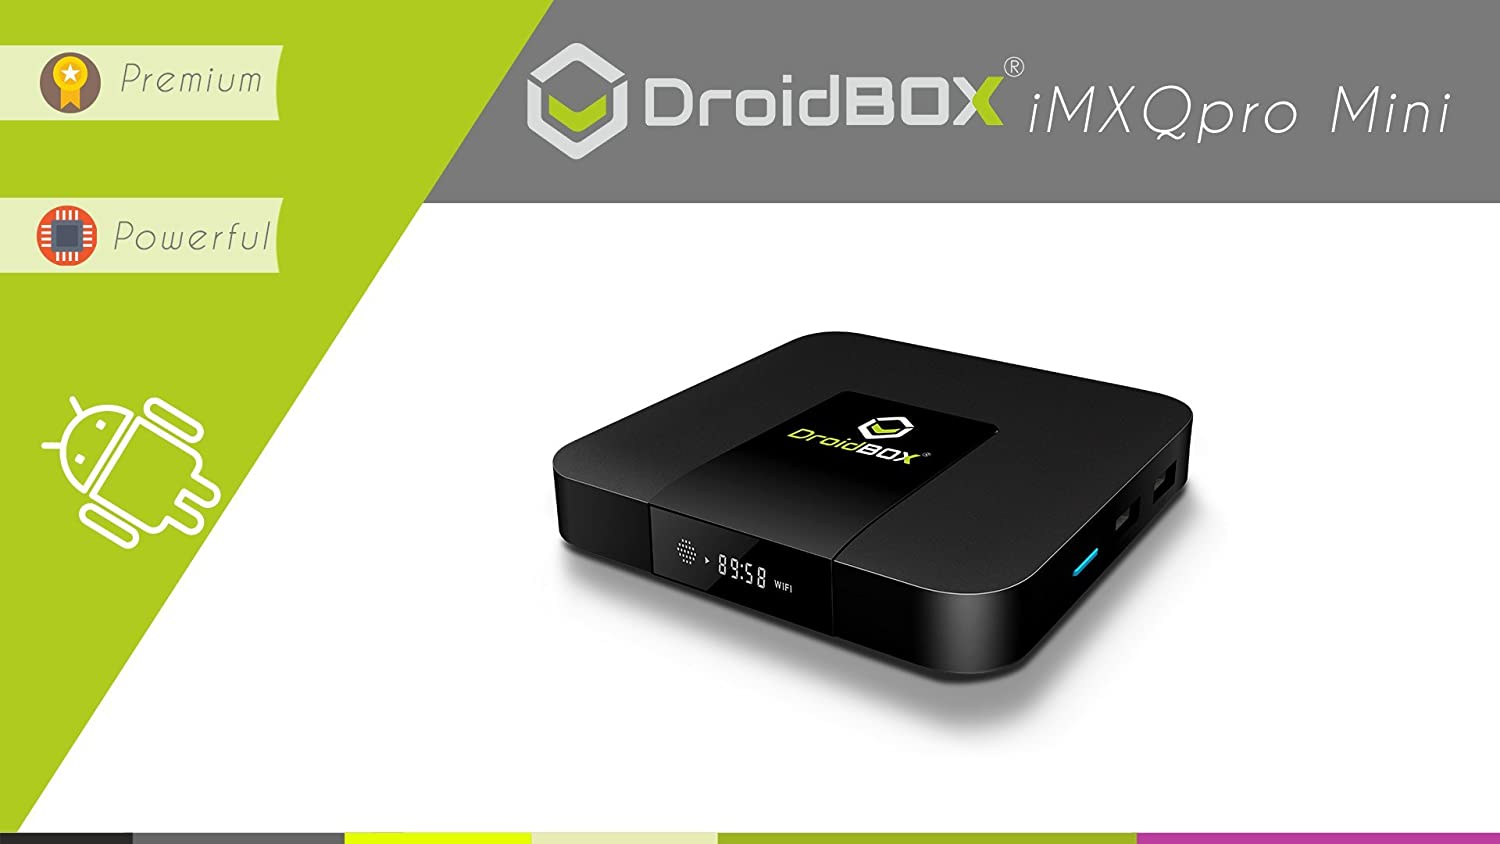 DroidBOX iMXQpro Mini Android 7.1 Nougat Smart Mini PC 4K UltraHD HDR Compatible Amlogic S905W Quad-Core 2GB RAM 16GB ROM [W]